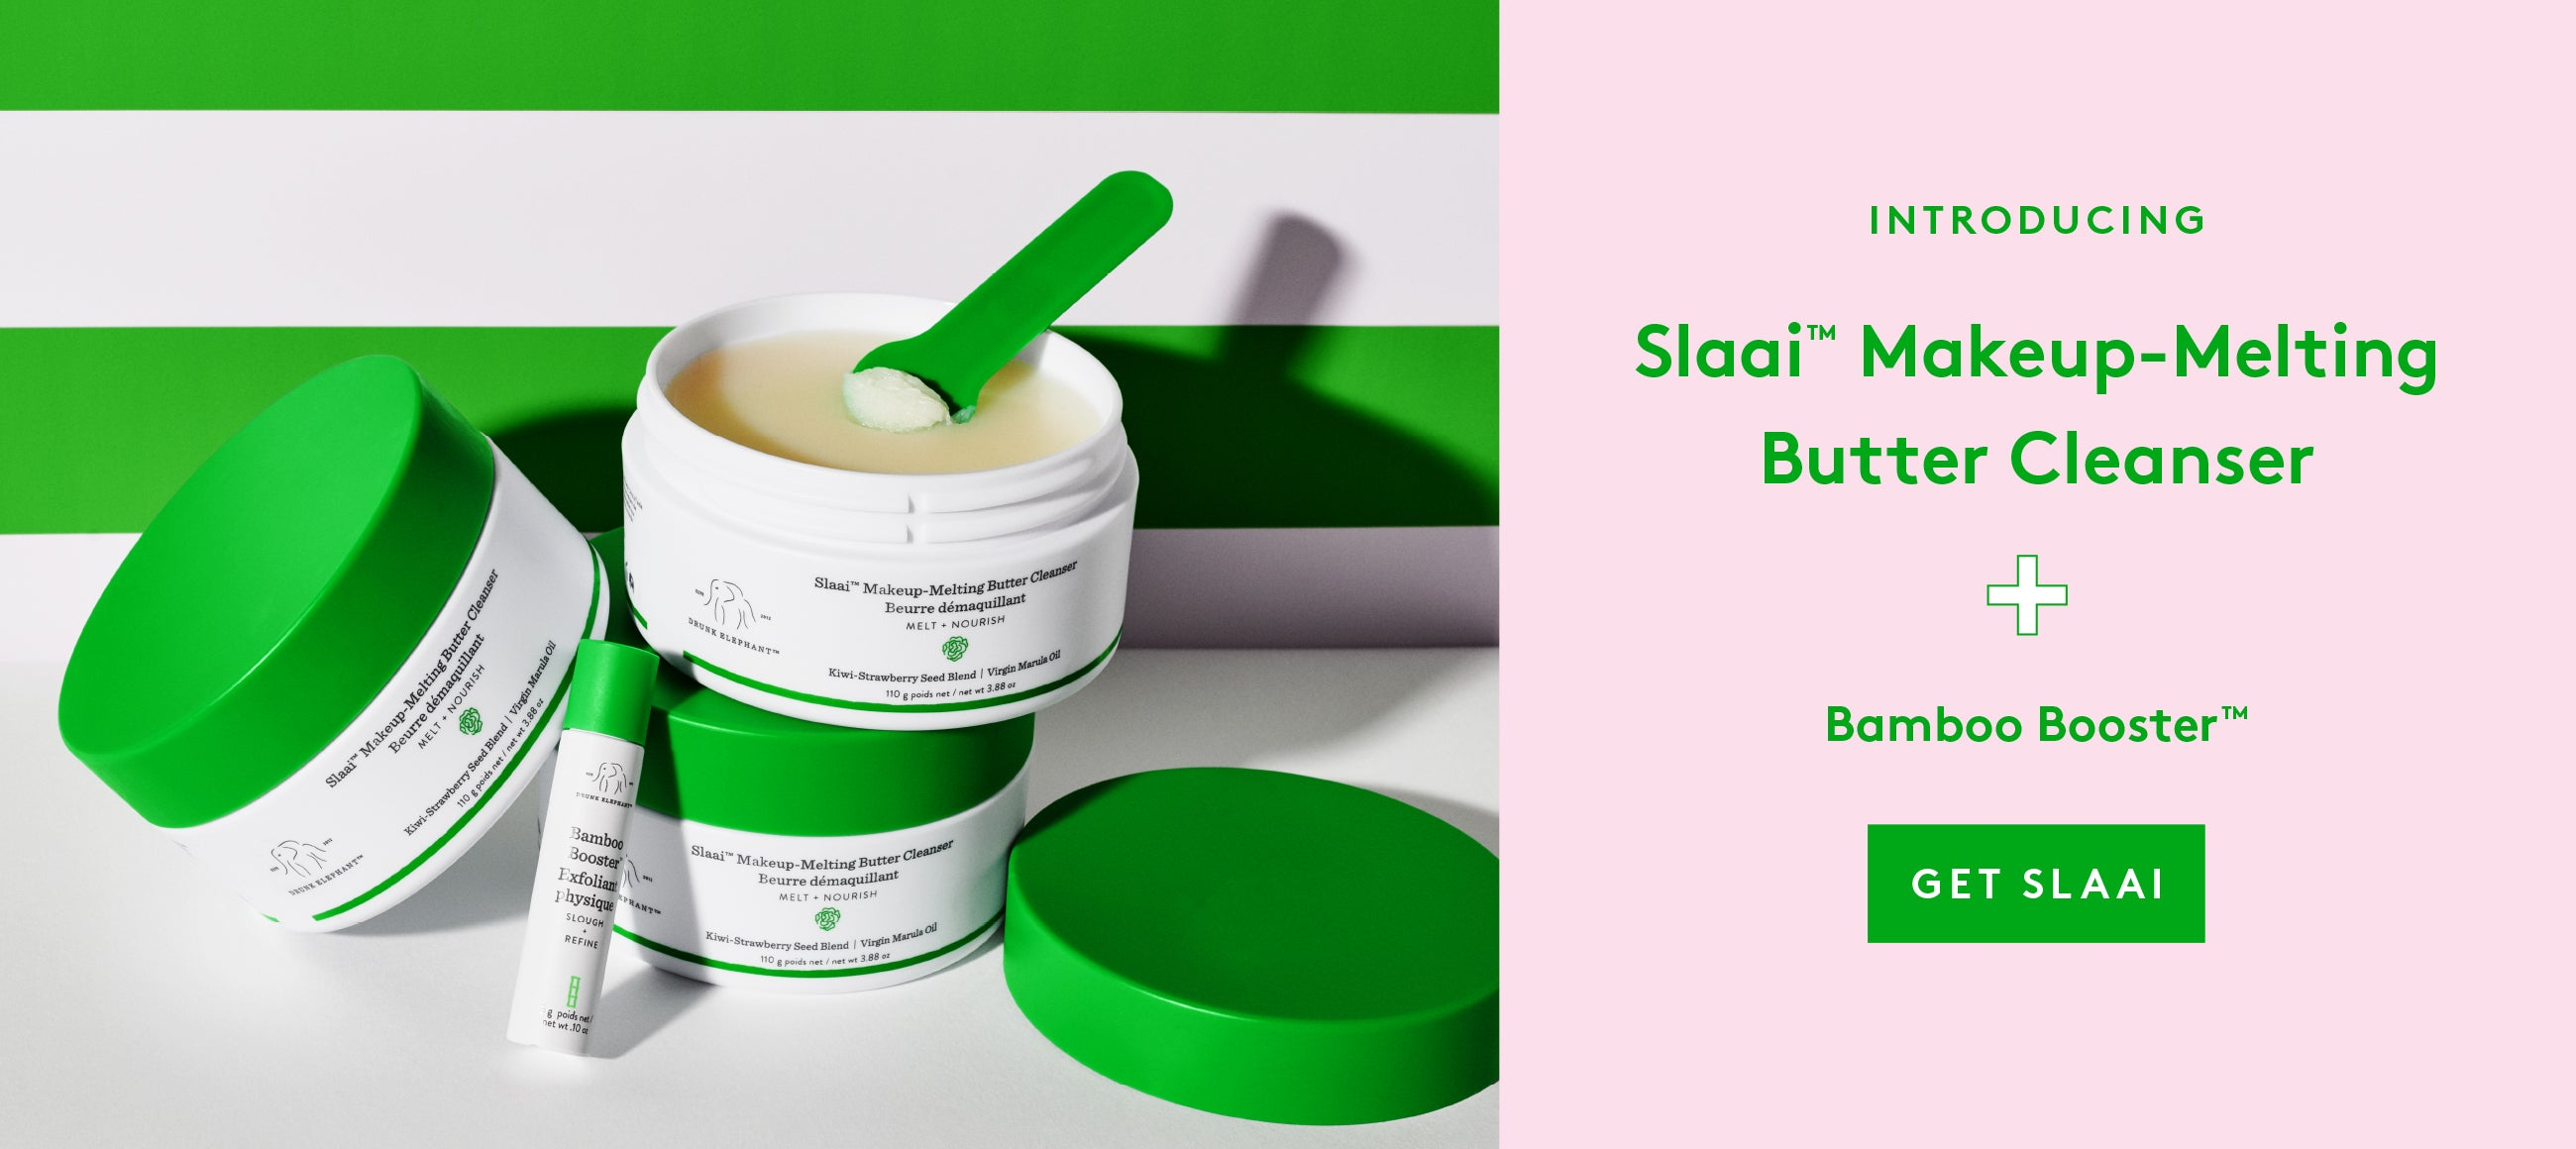 Slaai Makeup Melting Butter Cleanser is a cleansing balm that removes all traces of dirt, makeup and grime from the day. Use the Bamboo Booster for personalized physical exfoliation